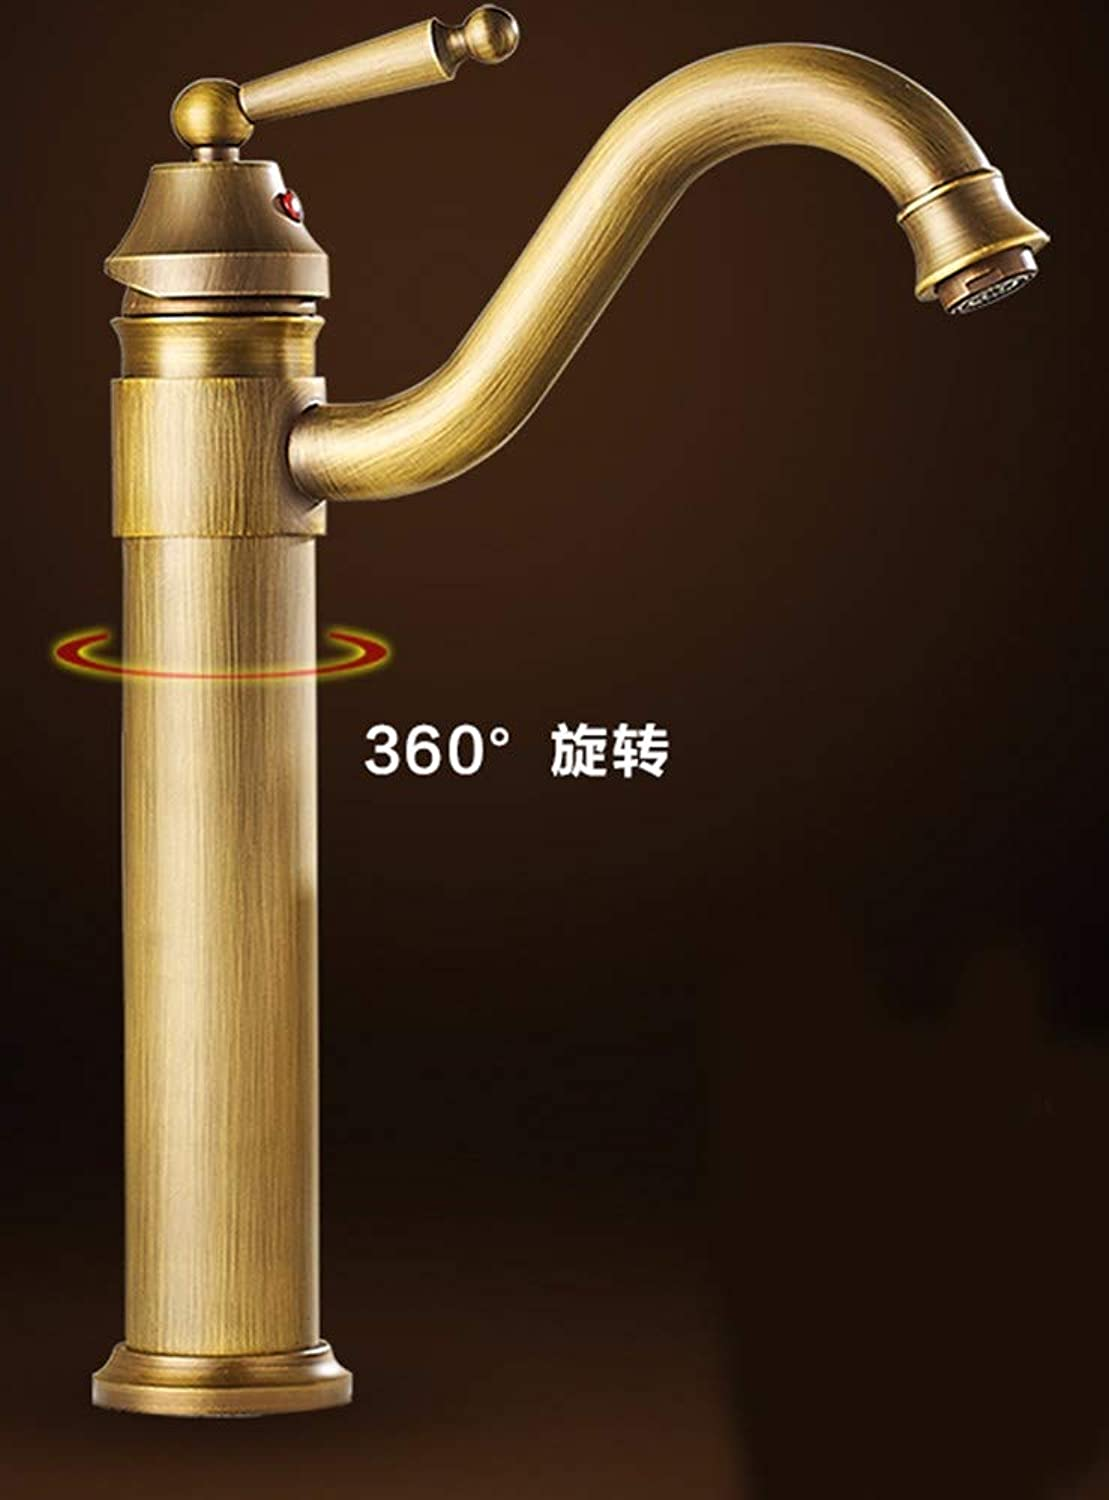 Hlluya Professional Sink Mixer Tap Kitchen Faucet Cold and hot, single handle single hole basin, on the whole, copper sink faucet,